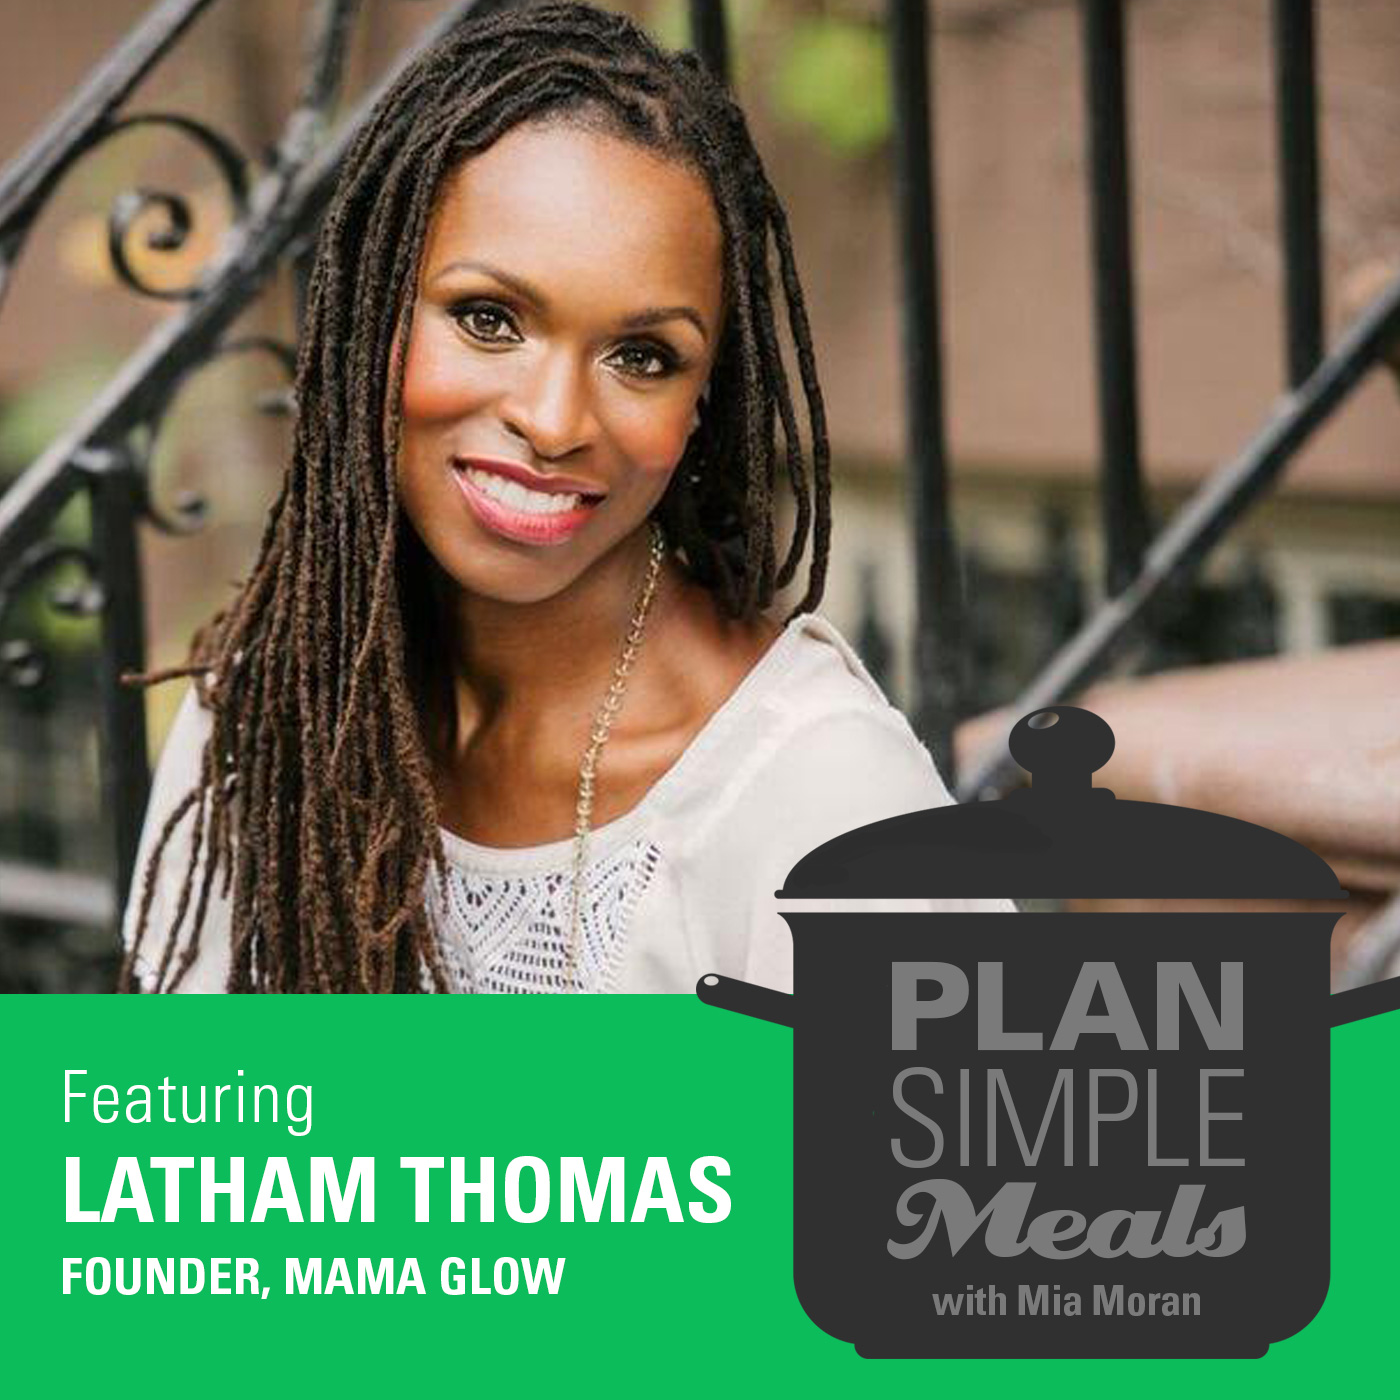 Get The Glow With Latham Thomas